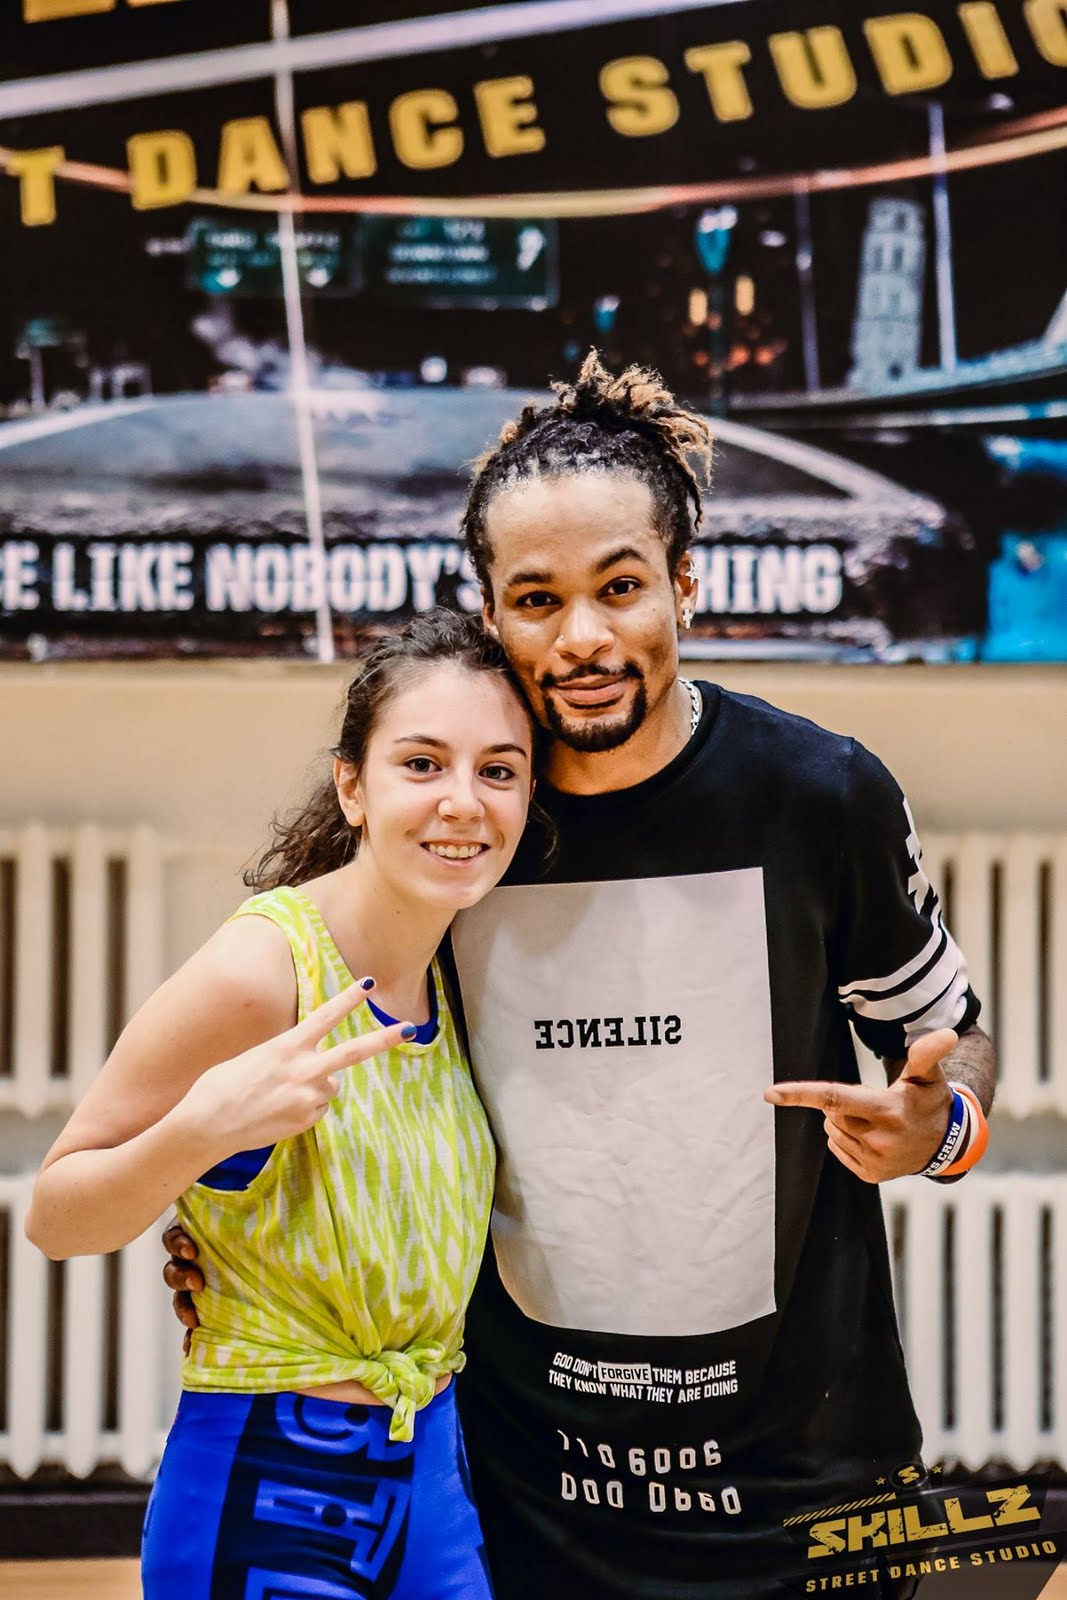 Dancehall workshop with Jiggy (France) - 65.jpg